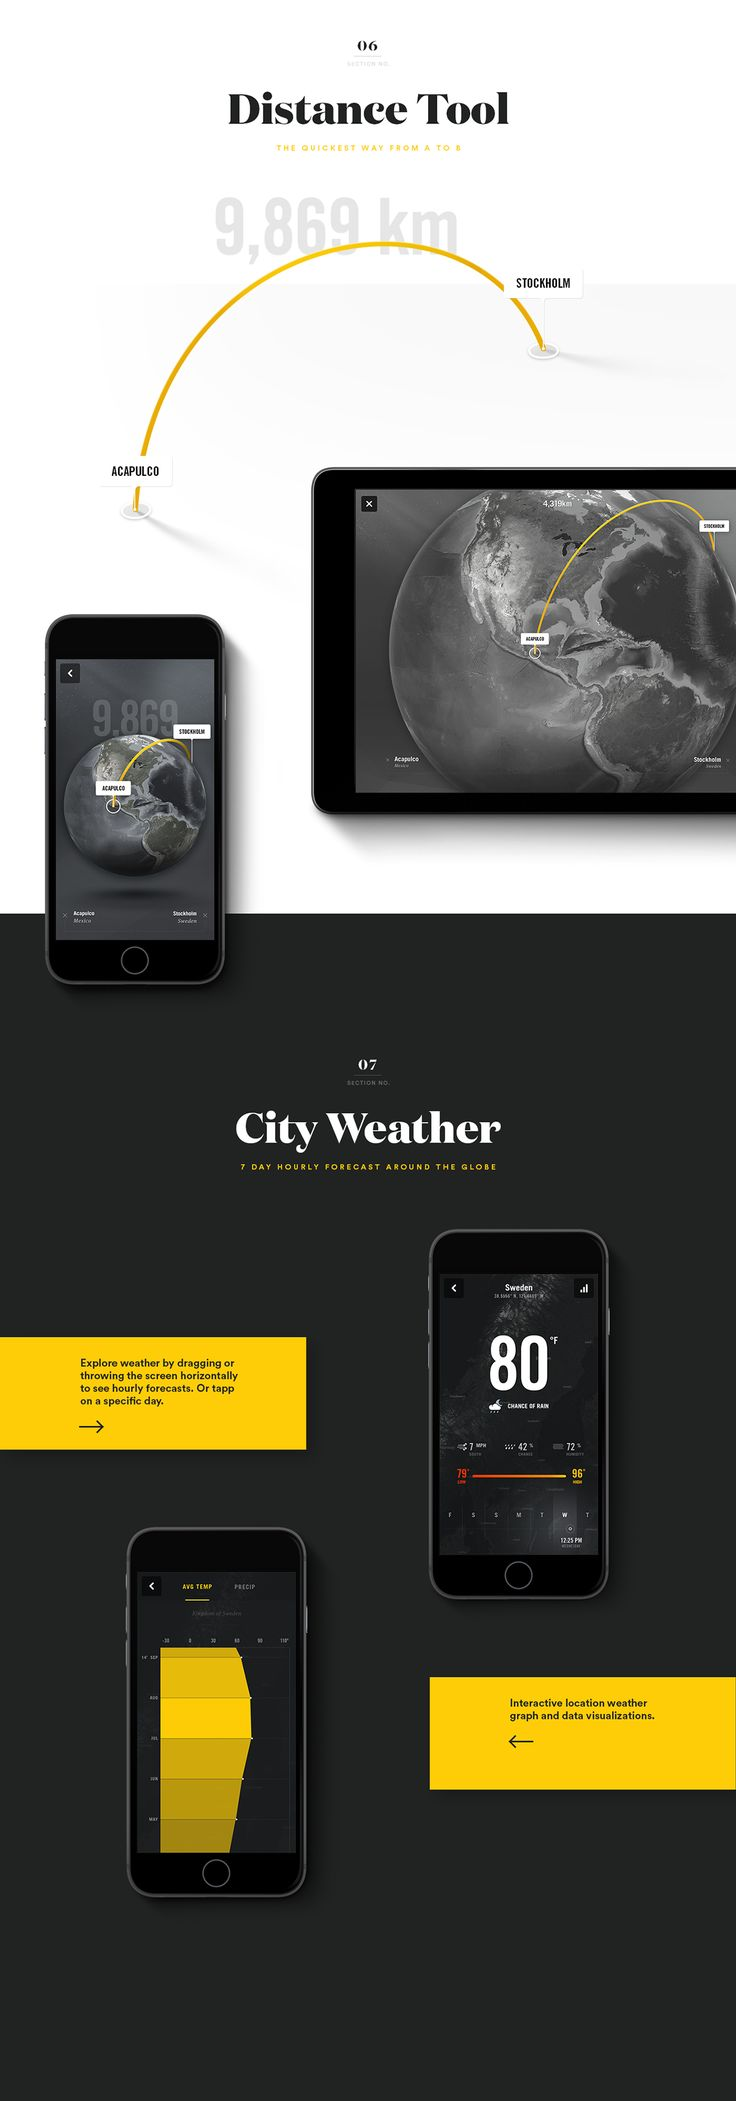 World Atlas / National Geographic / Digital art selected for the Daily Inspiration #2110